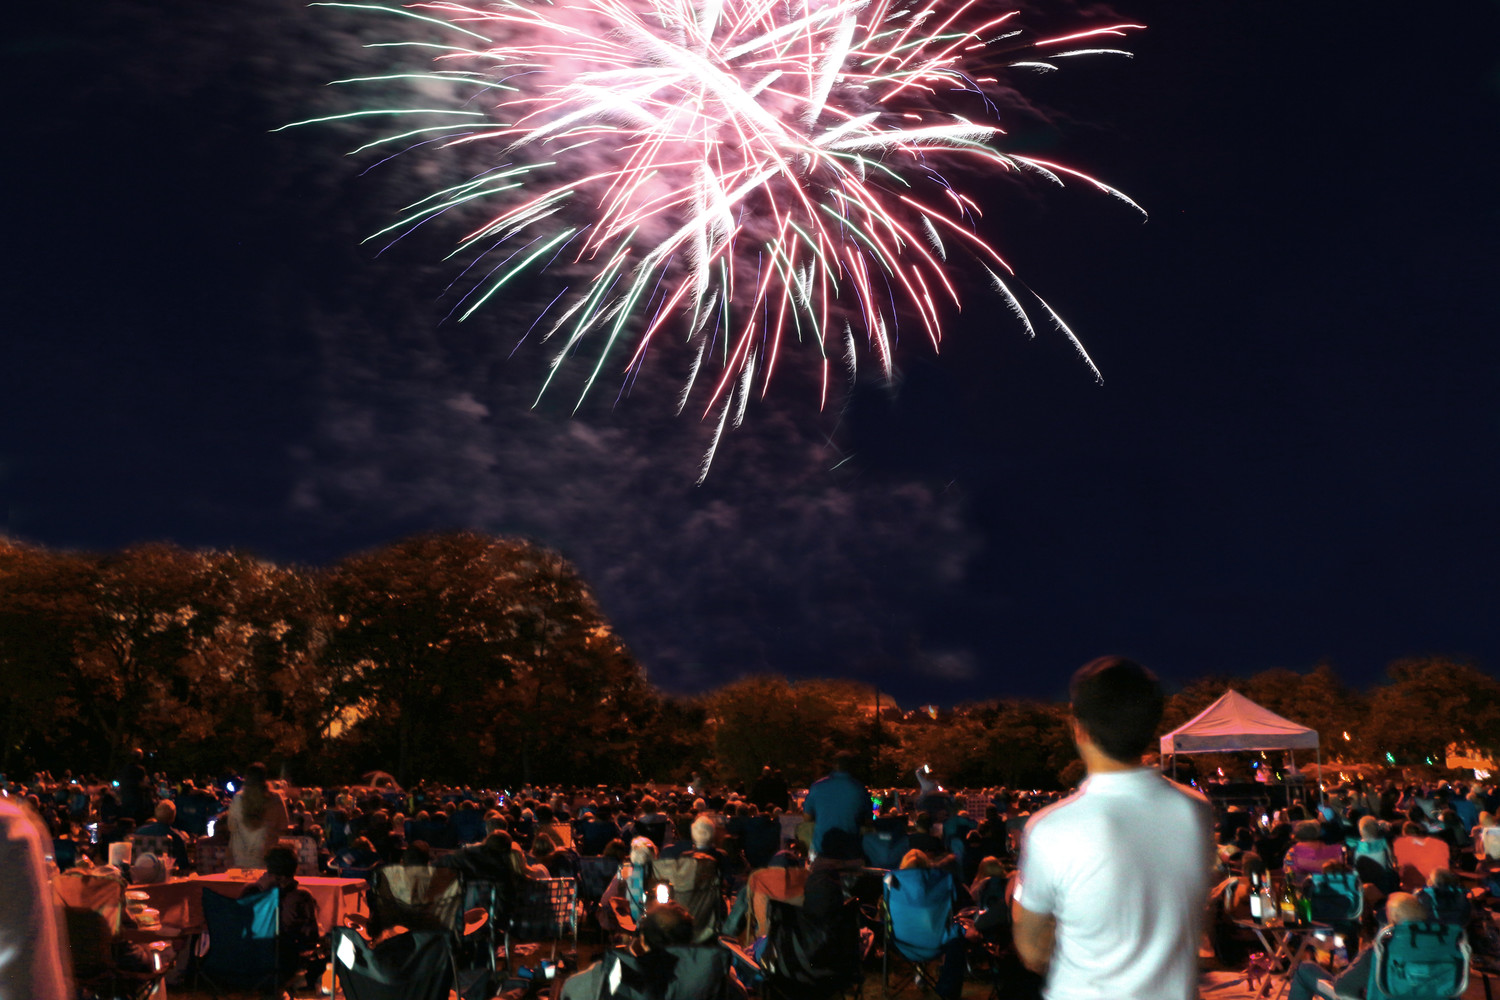 Fireworks illuminated the sky over Mill River Park on July 7 as hundreds watched the spectacle.